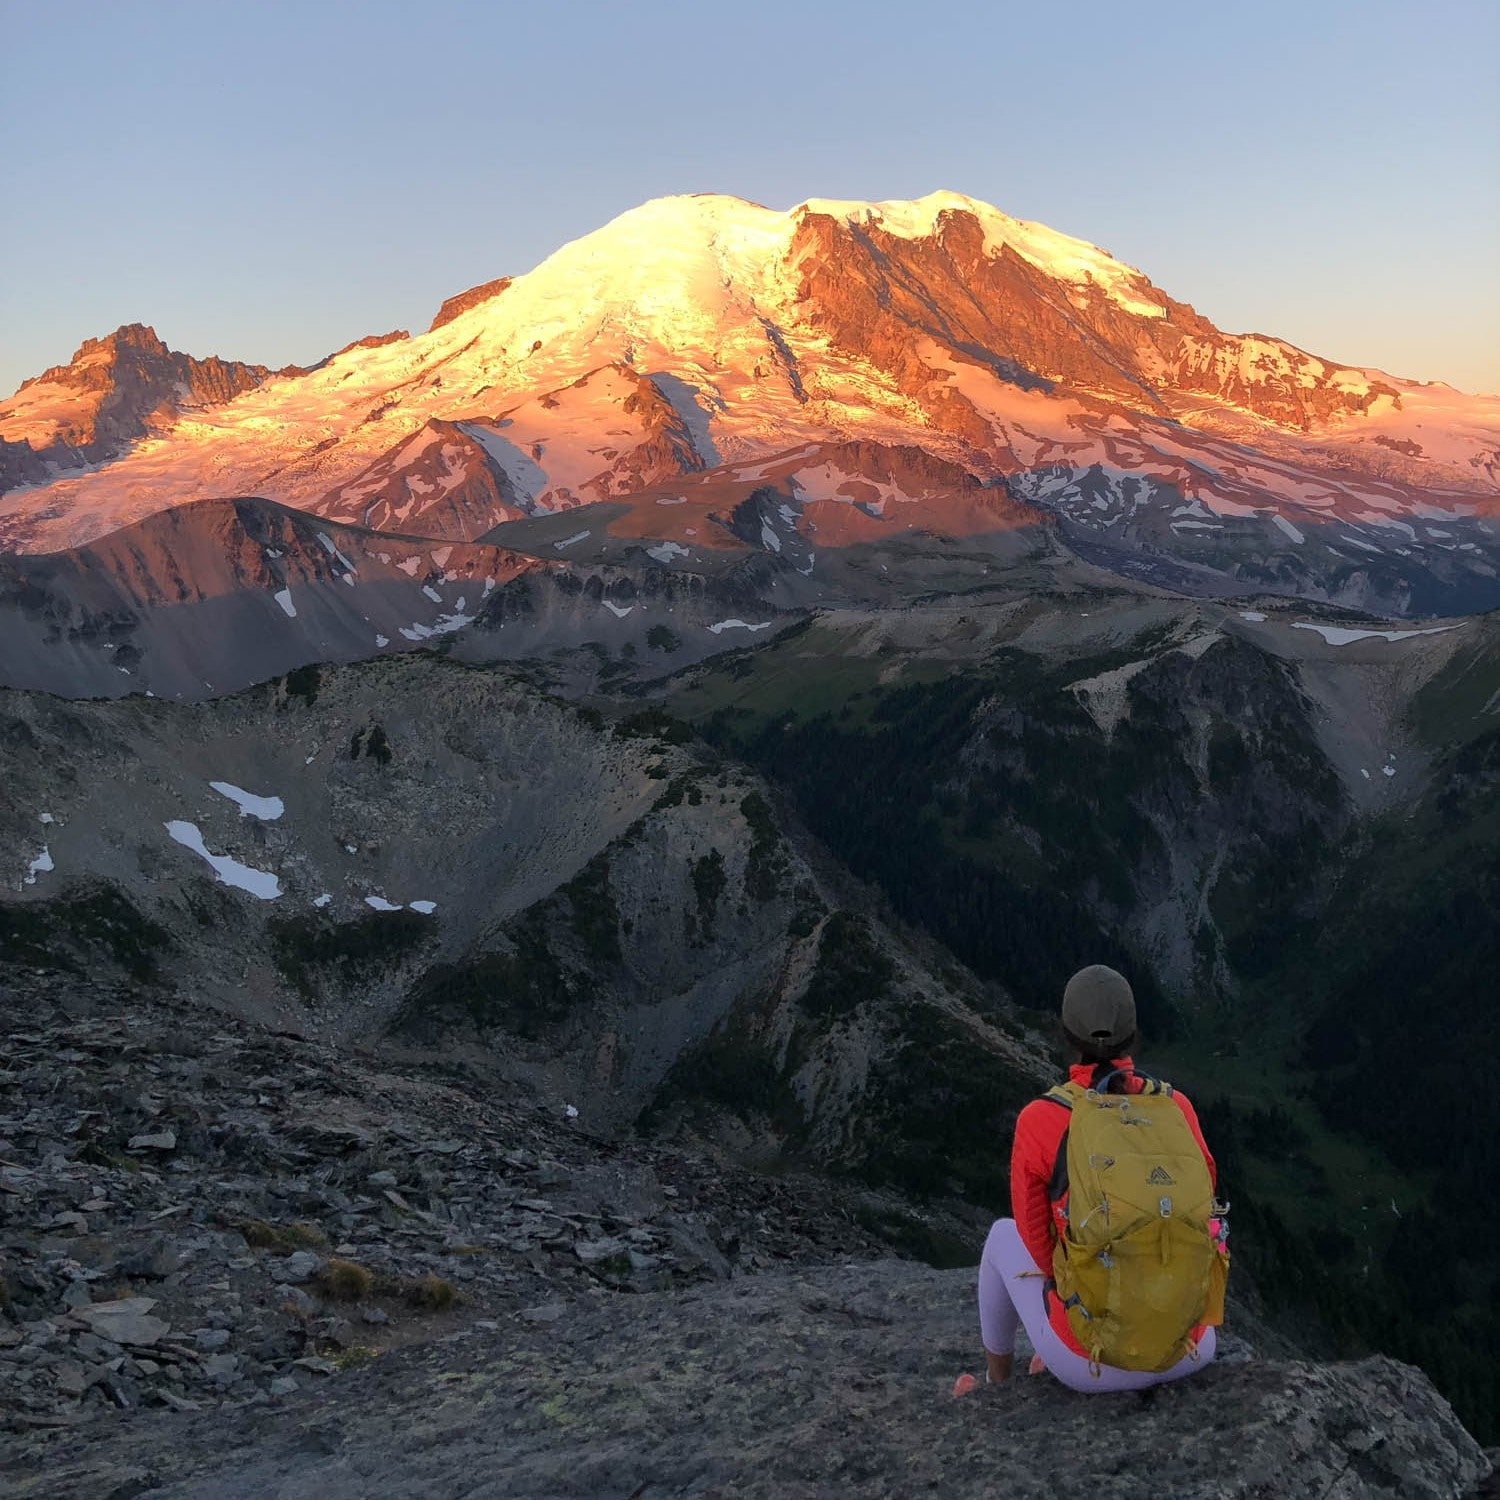 wonderland trail Hiker looking at Mount Rainier at sunset